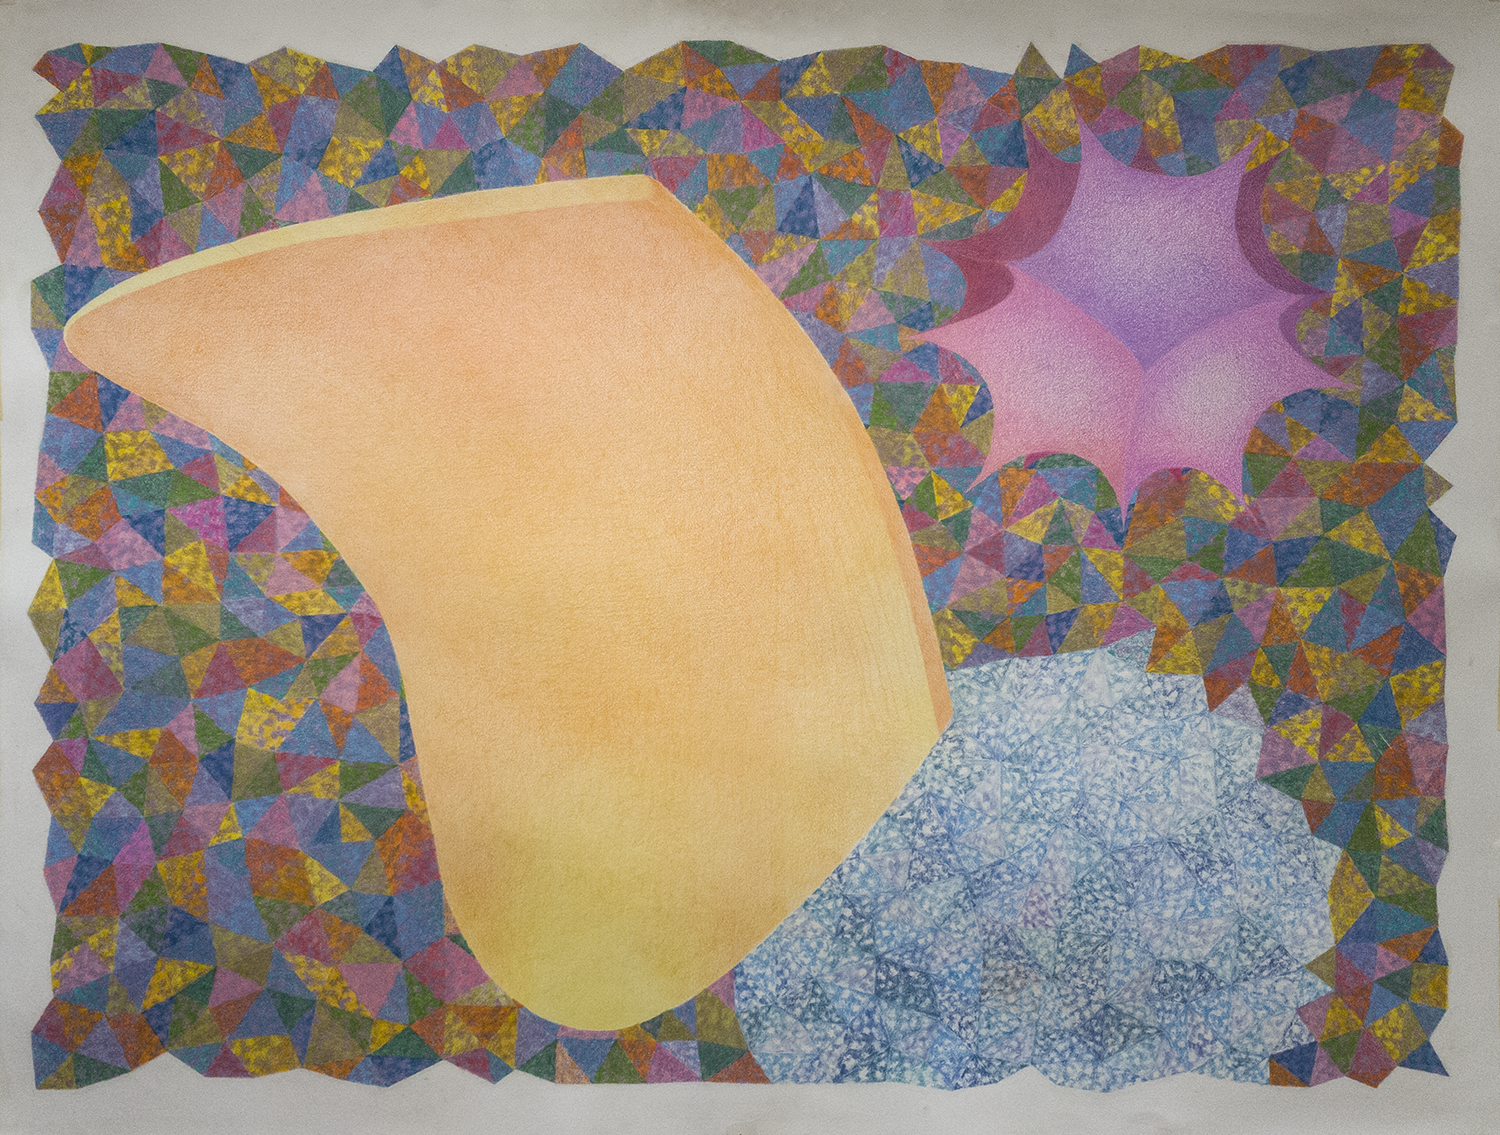 "COLOR, PLACE with 2 Hyperbolic forms© 2019 Colored Pencils on Cotton Paper 36"" (H) x 48"" (W)"